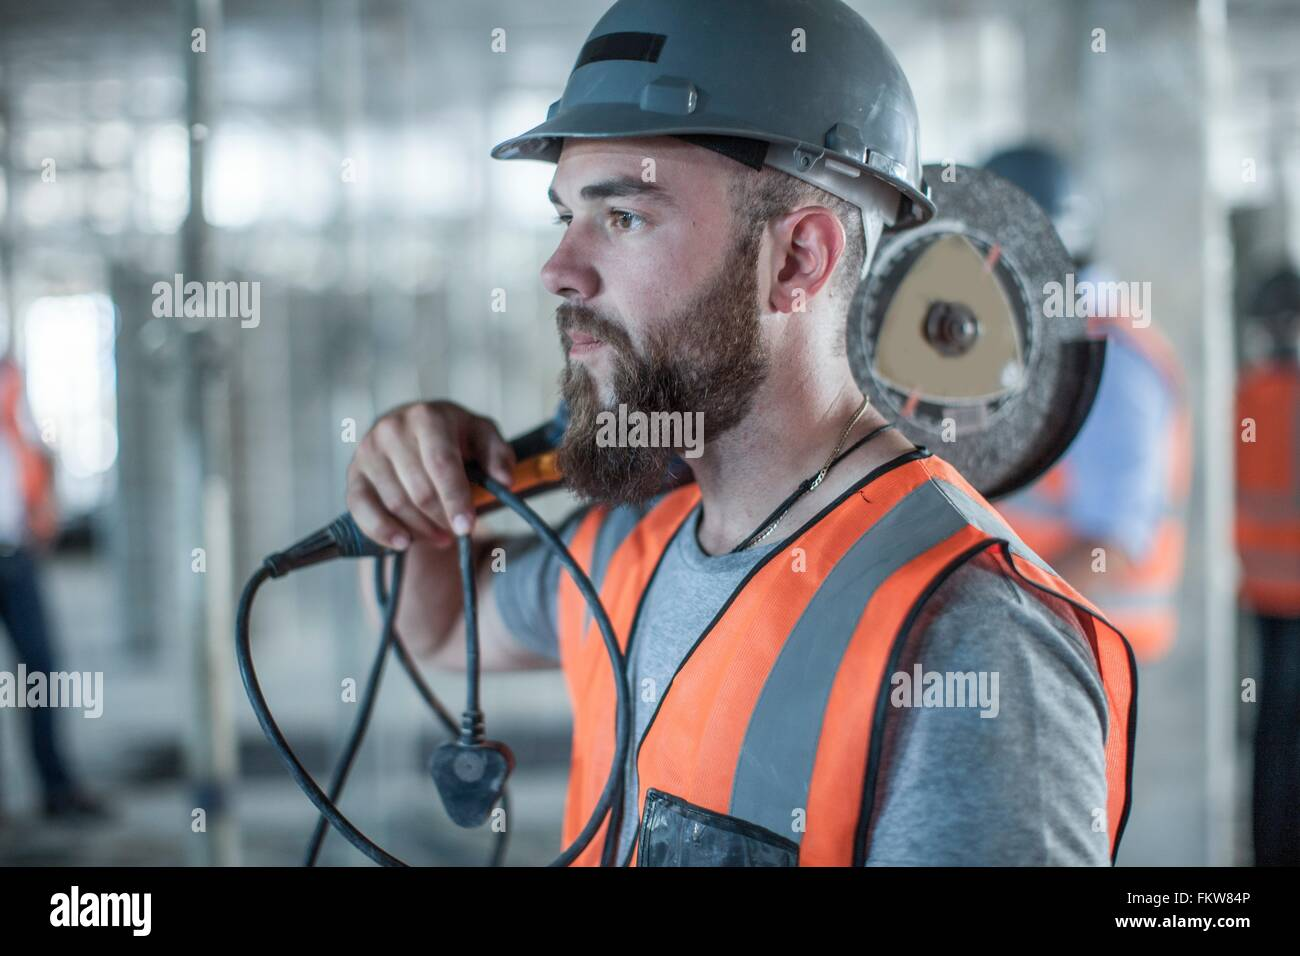 Young male builder carrying circular saw on shoulder on construction site - Stock Image